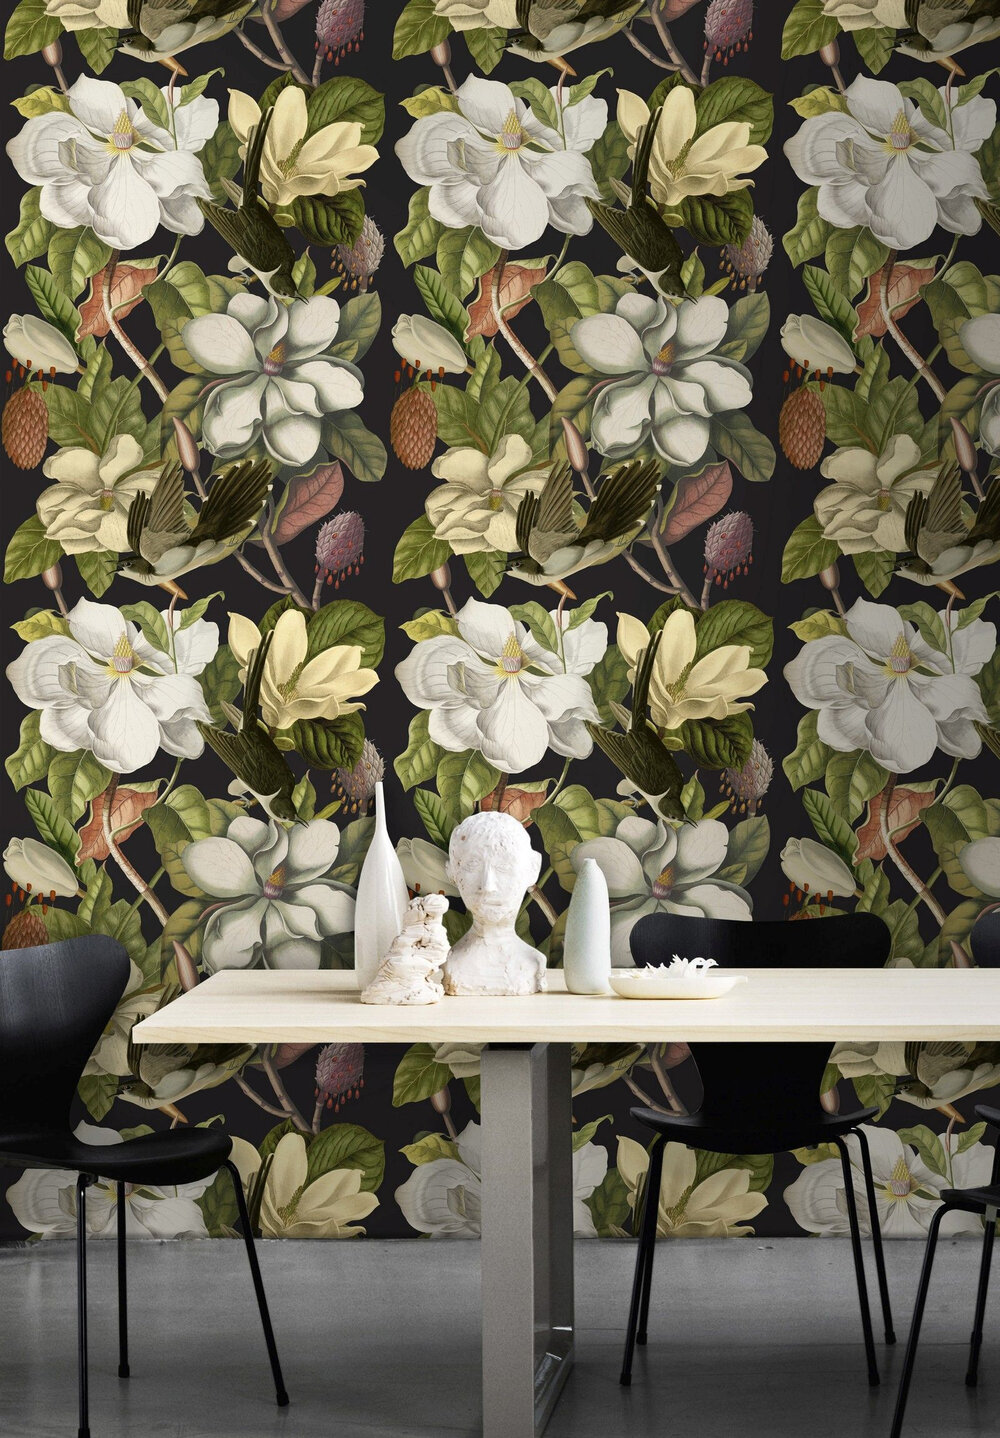 Magnolia Mural - Black / Green - by Mind the Gap